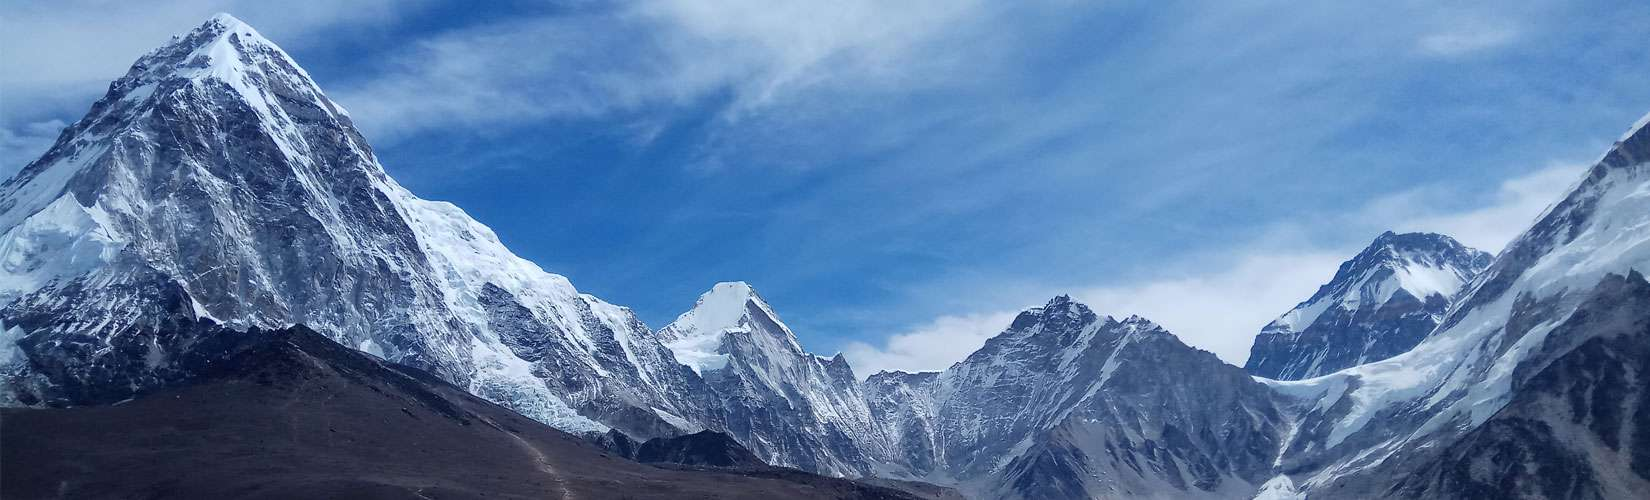 Everest Base Camp Weather March, April, May